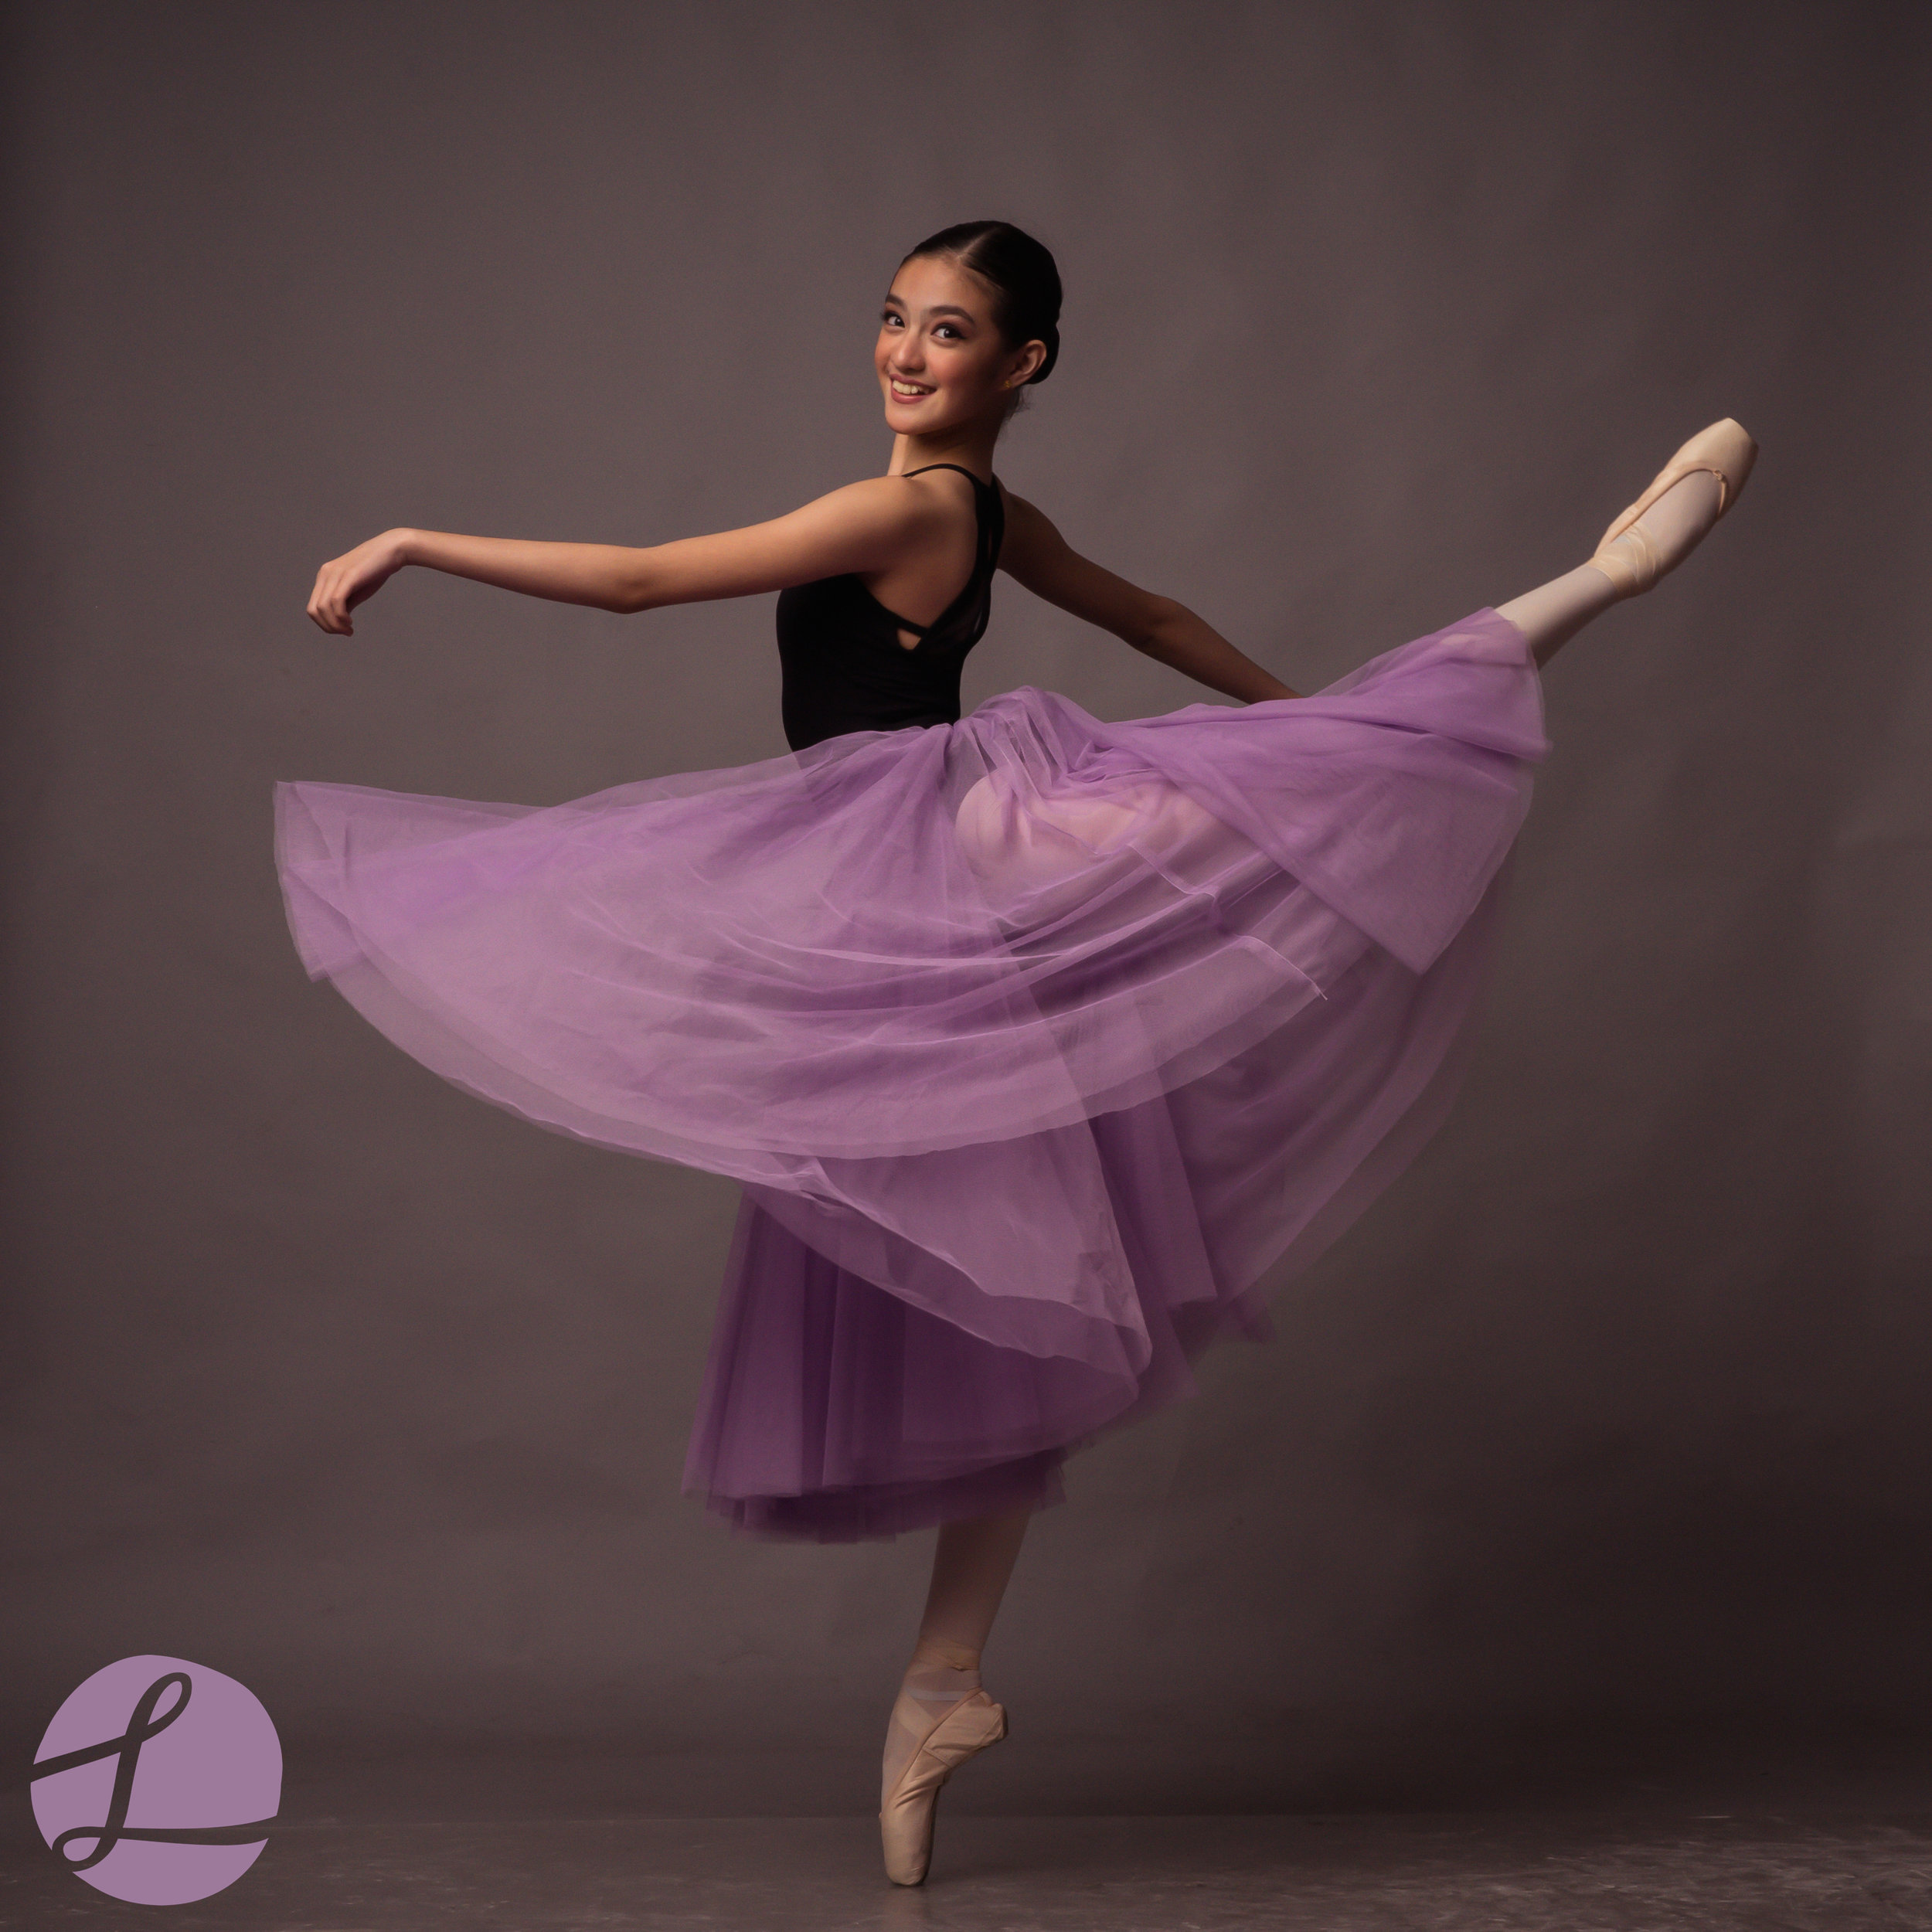 - @YSABEL_BERNARDOYsabel is our 2018 Philippine brand ambassador. Her greatest passion is dancing ballet, and she trains under Effie Nañas at the JNA Dance Centre. She loves to travel and she's happy to say that for the past couple of years, She's been able to mix the two together.